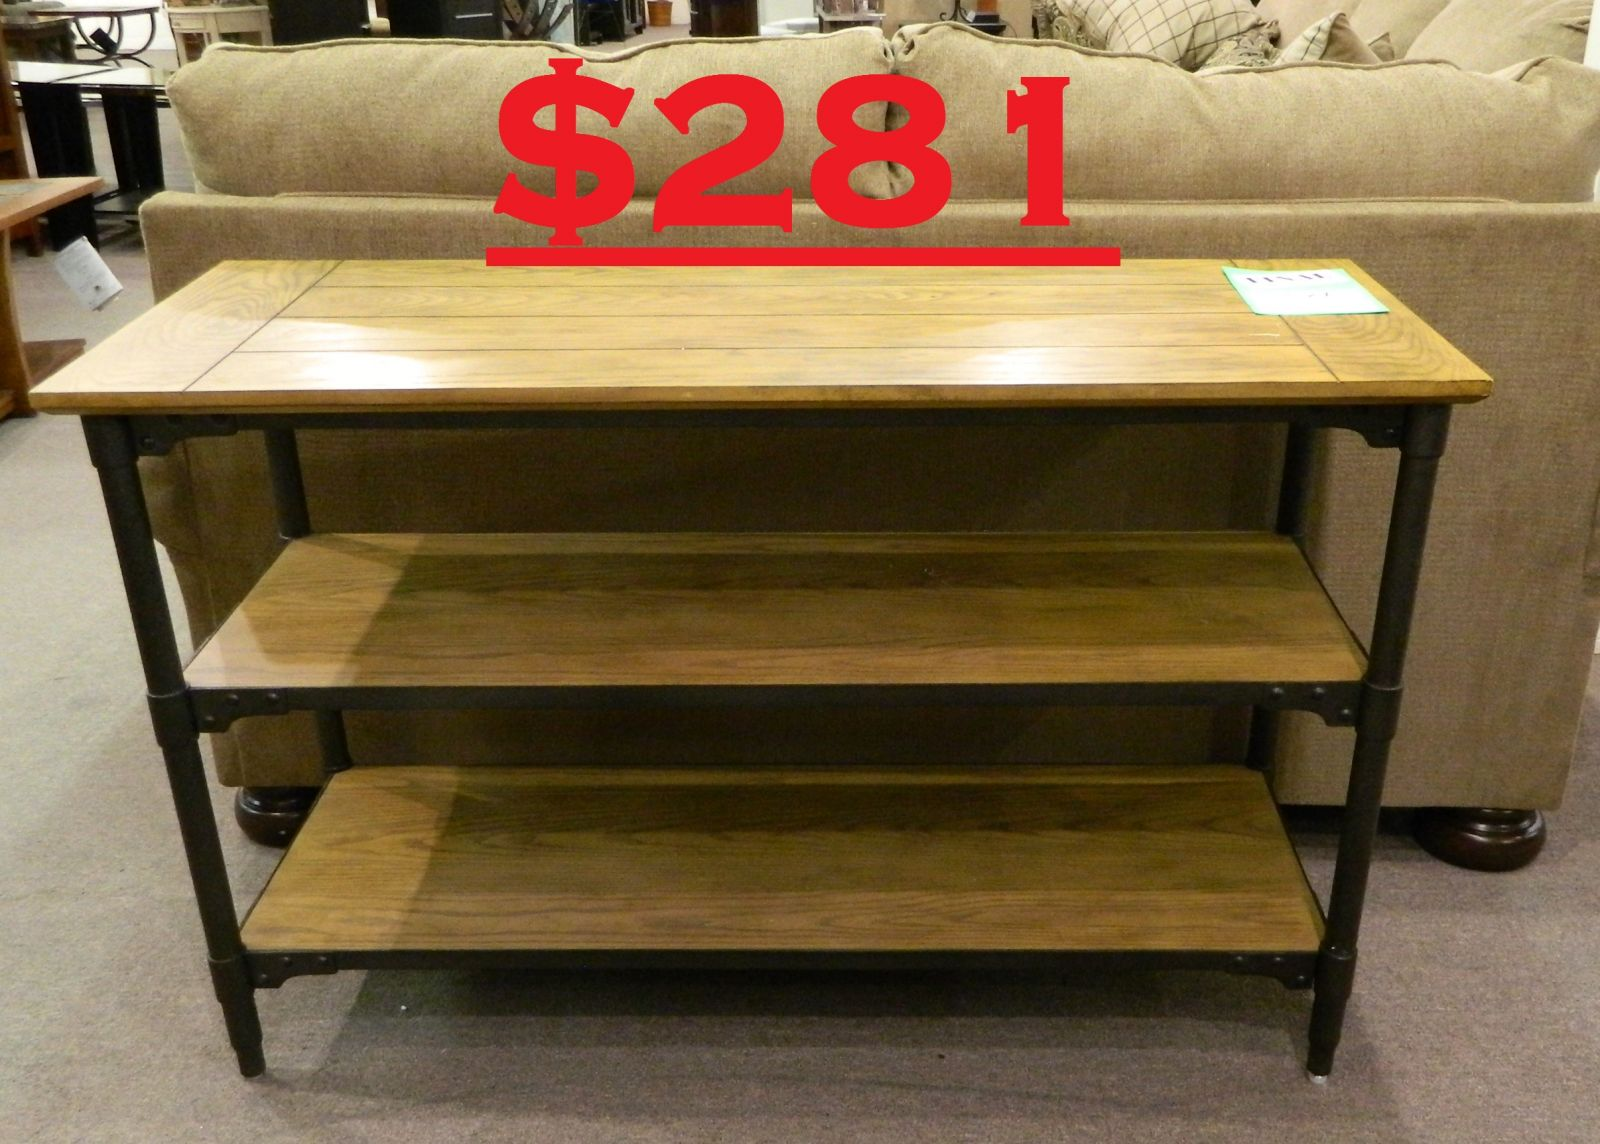 Broyhill Ember Grove Sofa Table Was 570 Clearance Price 281